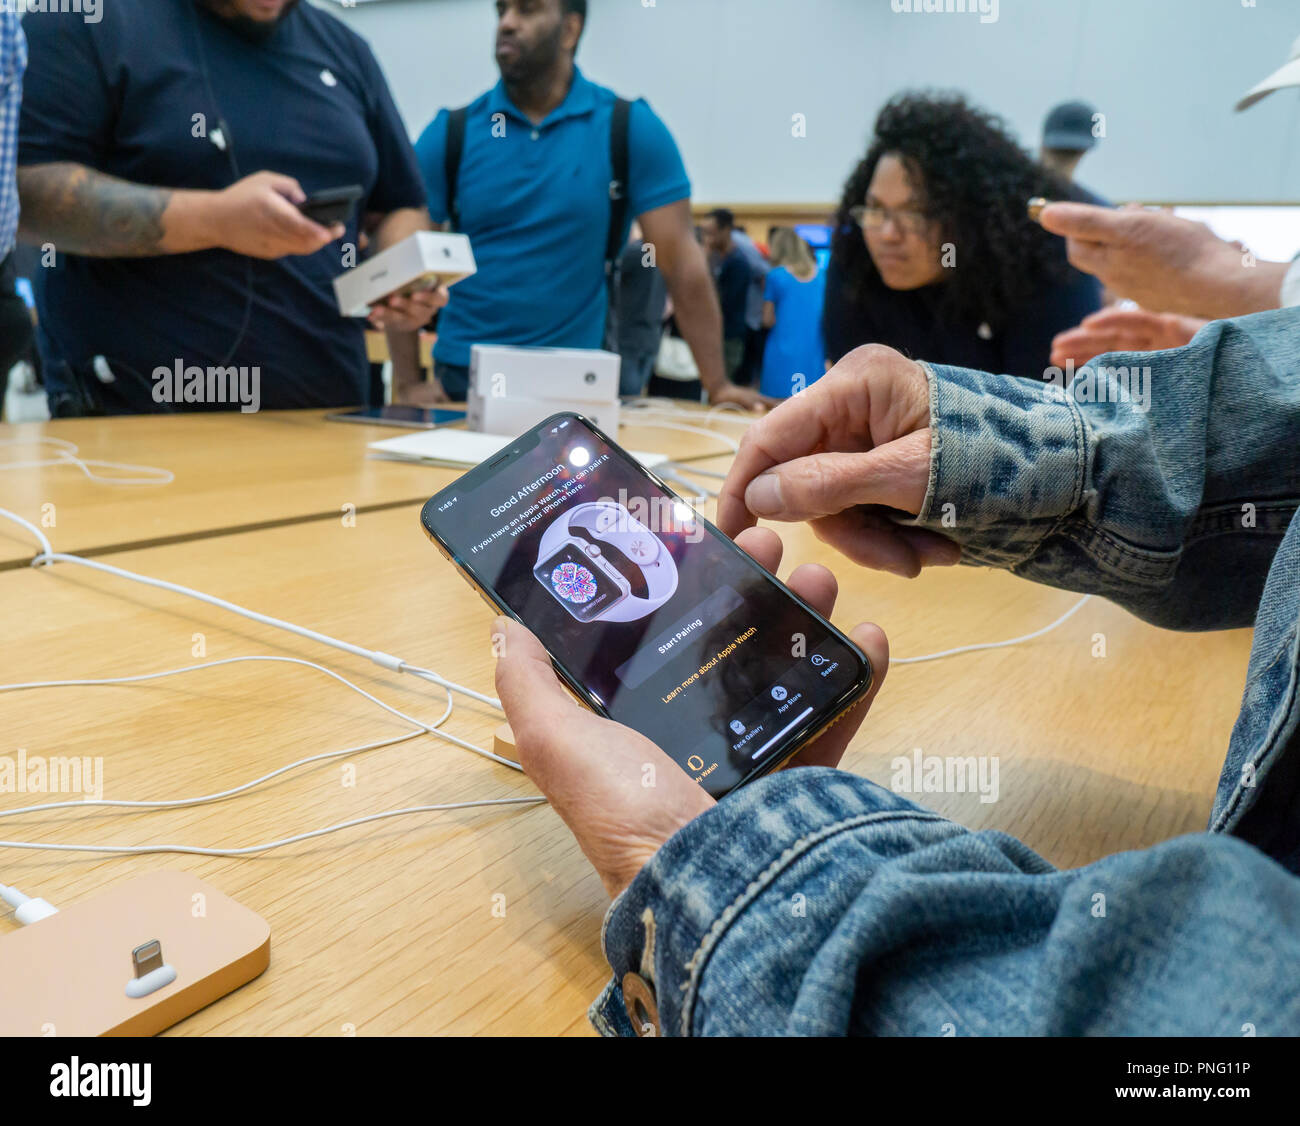 New York, USA. 21st September 2018. A customer in the Apple store in the WTC Transportation Hub in New York tries out the new iPhone XS on Friday, September 21, 2018, the first day they went on sale.  The new phones, anxiously awaited by drooling iPhone aficionados, sell for a whopping $999 for the XS and $1099 for the XS Max with the Max having a 6.5 inch display.  (© Richard B. Levine) Credit: Richard Levine/Alamy Live News Credit: Richard Levine/Alamy Live News Stock Photo